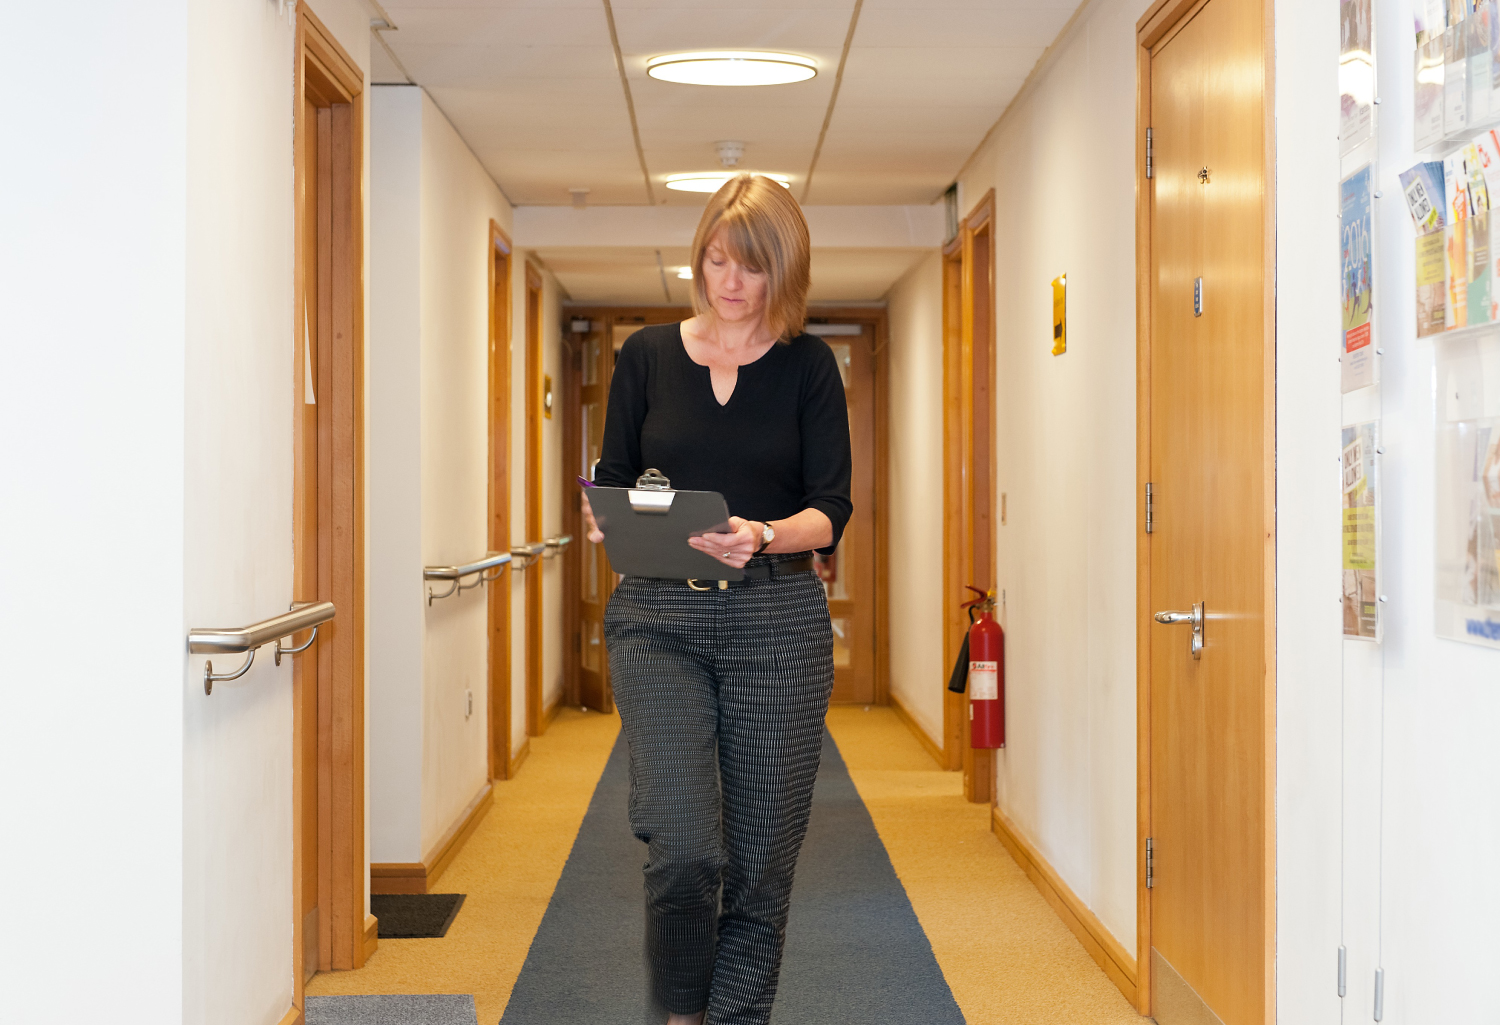 Person carrying out hospice inspection